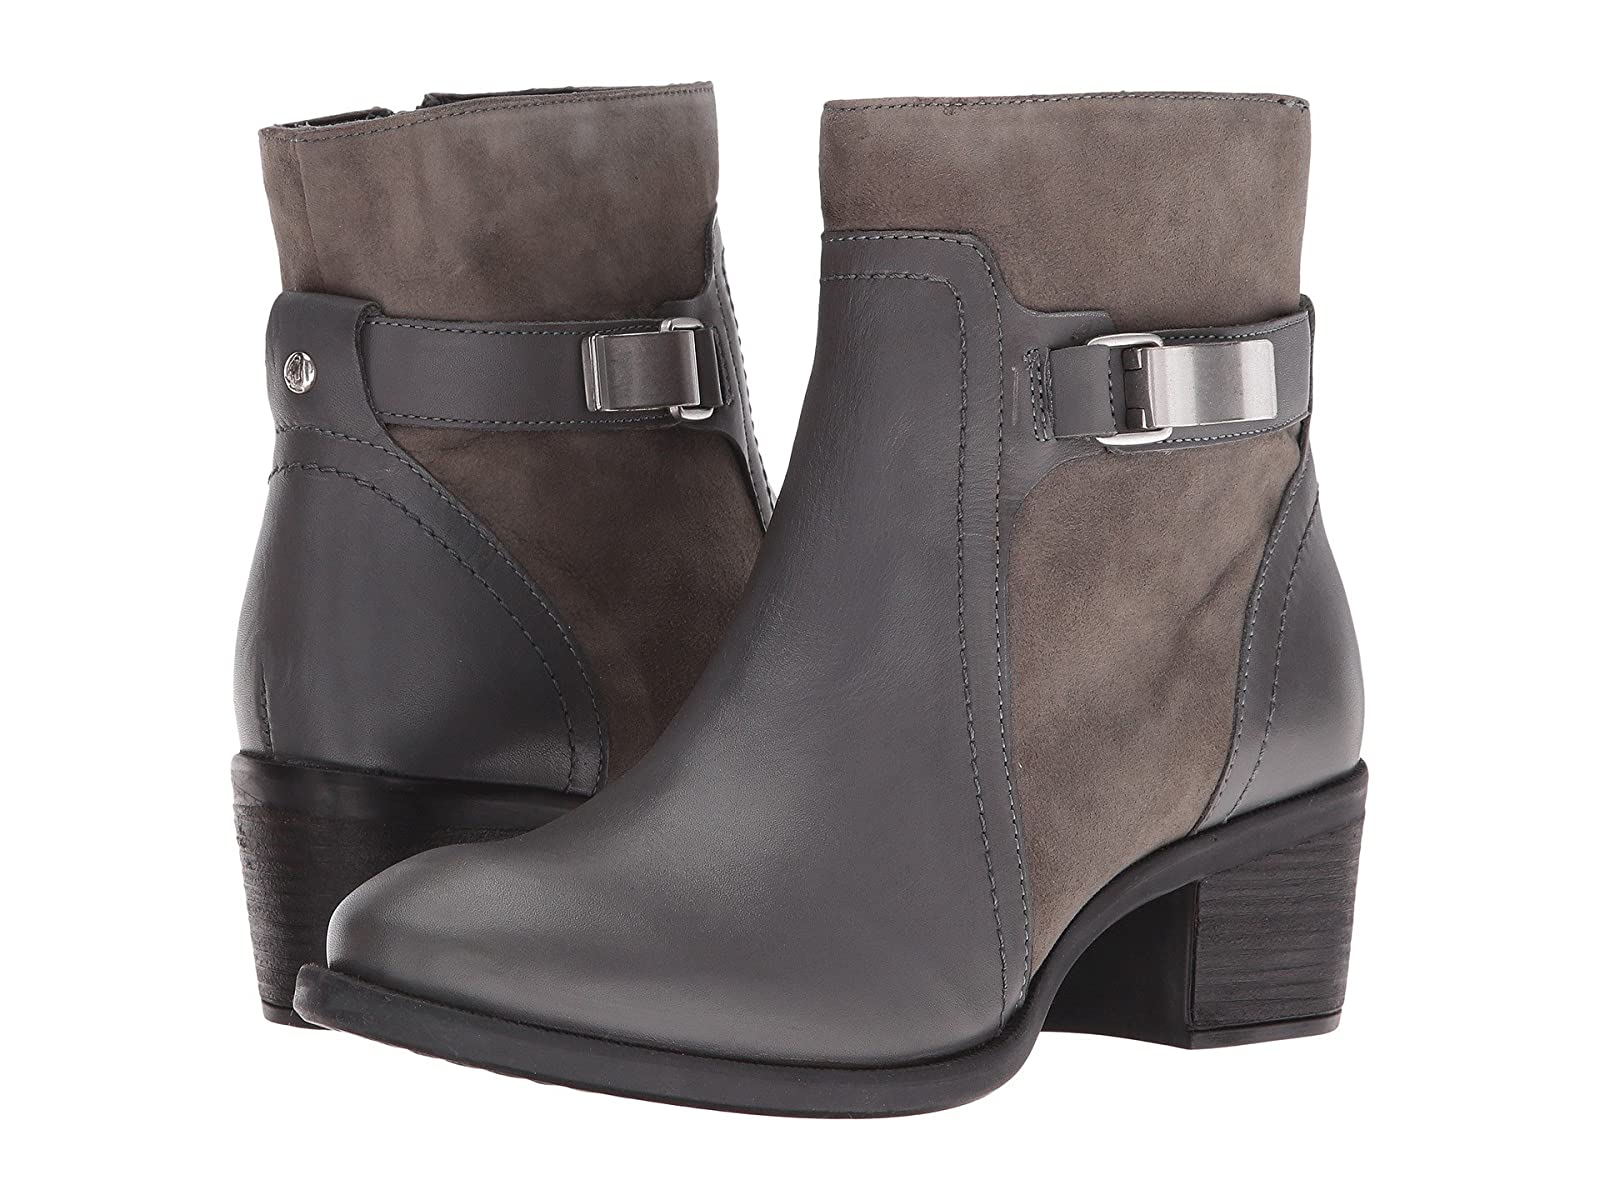 Hush Puppies Fondly NellieCheap and distinctive eye-catching shoes